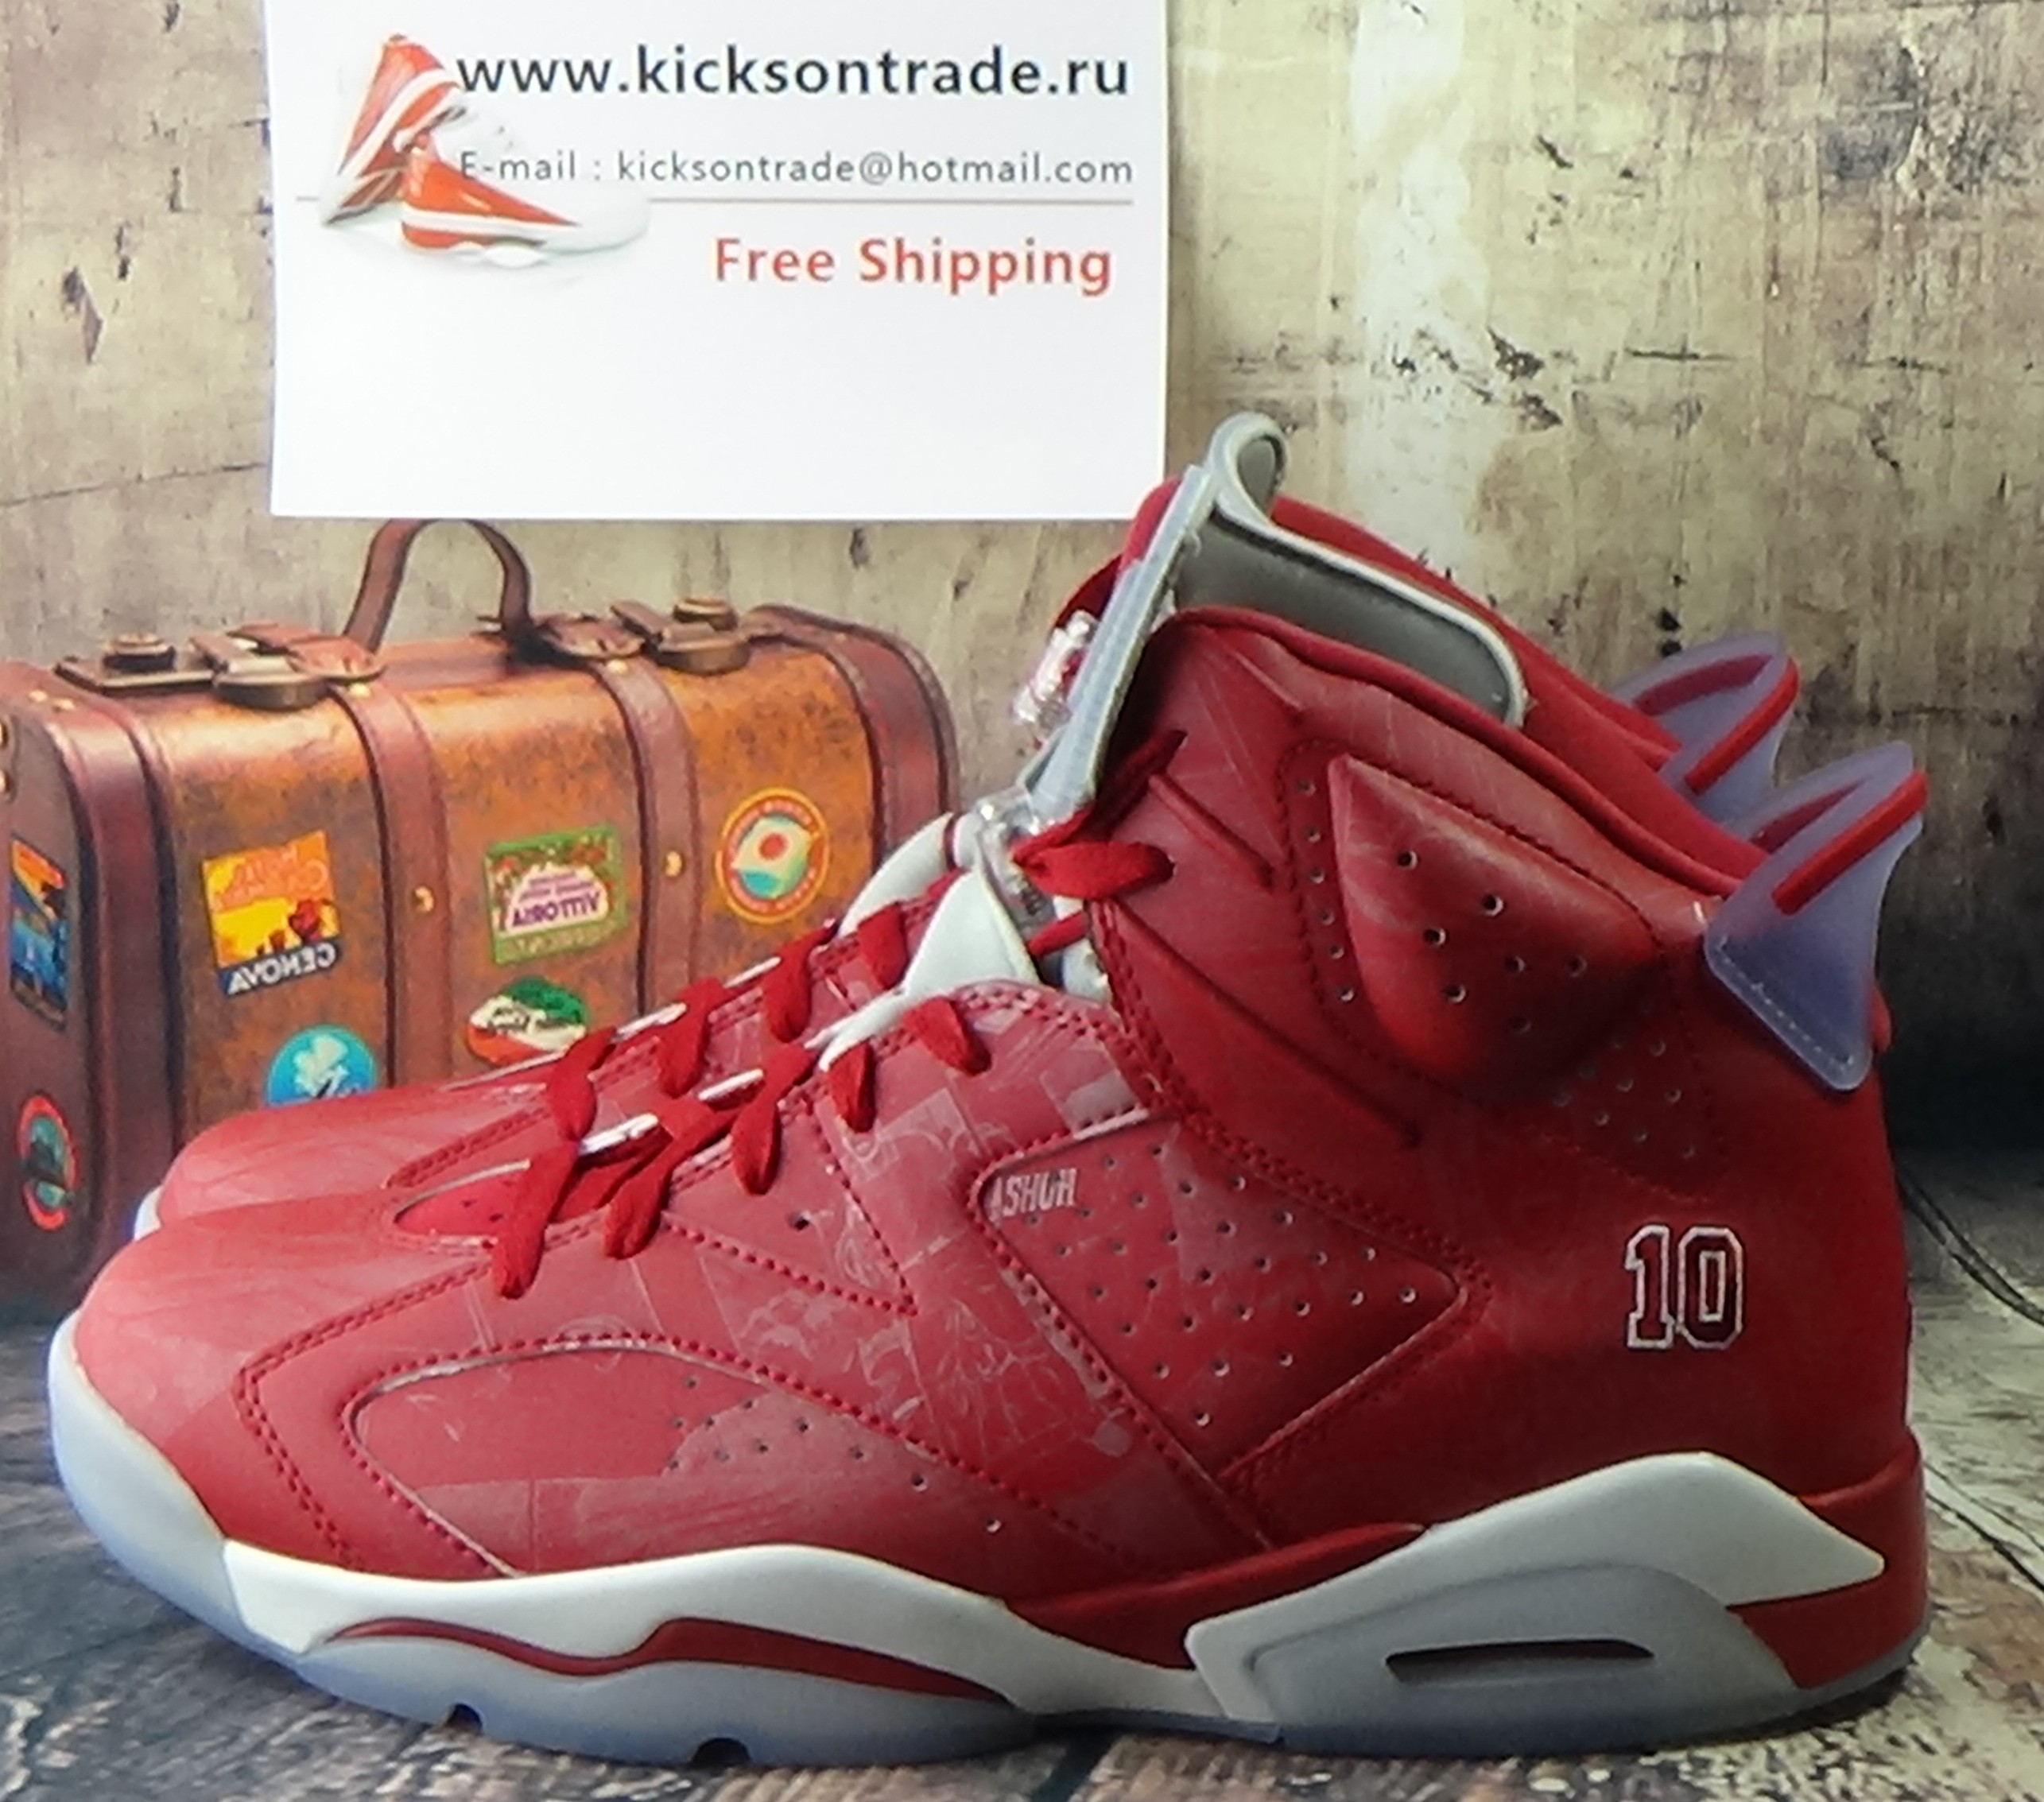 Authentic Air Jordan 6 Slam Dunk